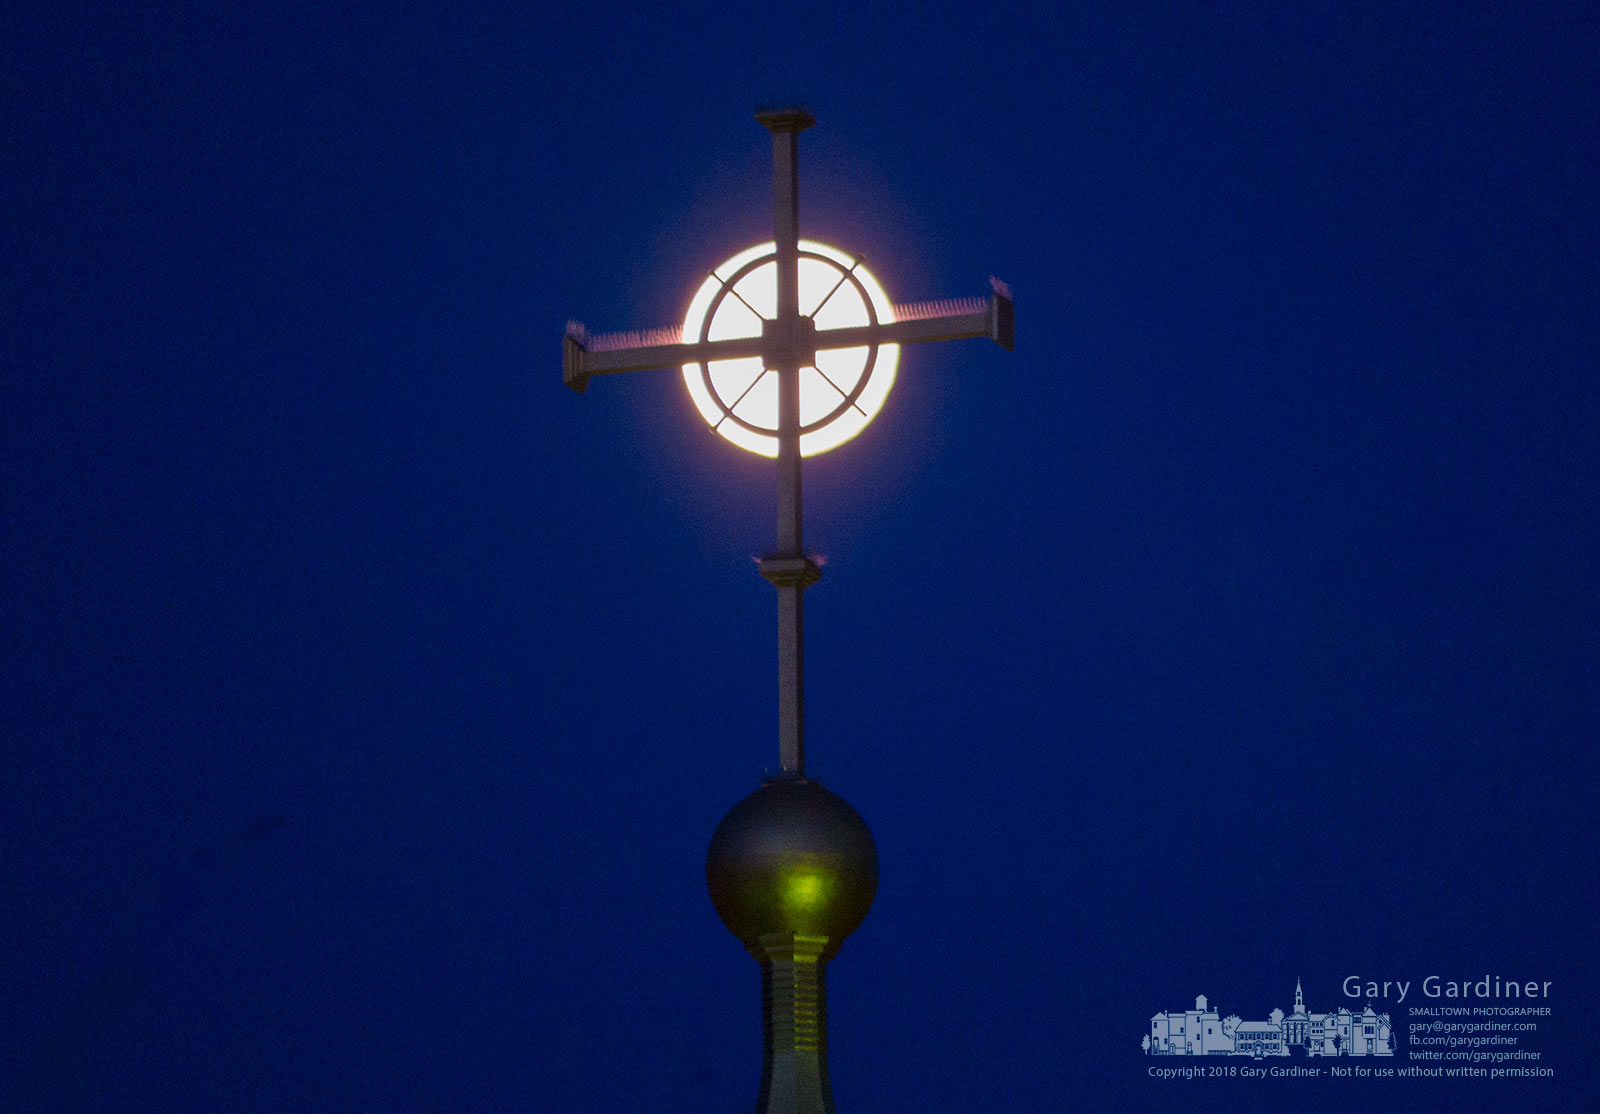 The morning moon slides behind the cross at the top of St. Paul the Apostle Catholic Church as parishioners arrive for the 7 a.m. Easter morning Mass. My Final Photo for April 1, 2018.